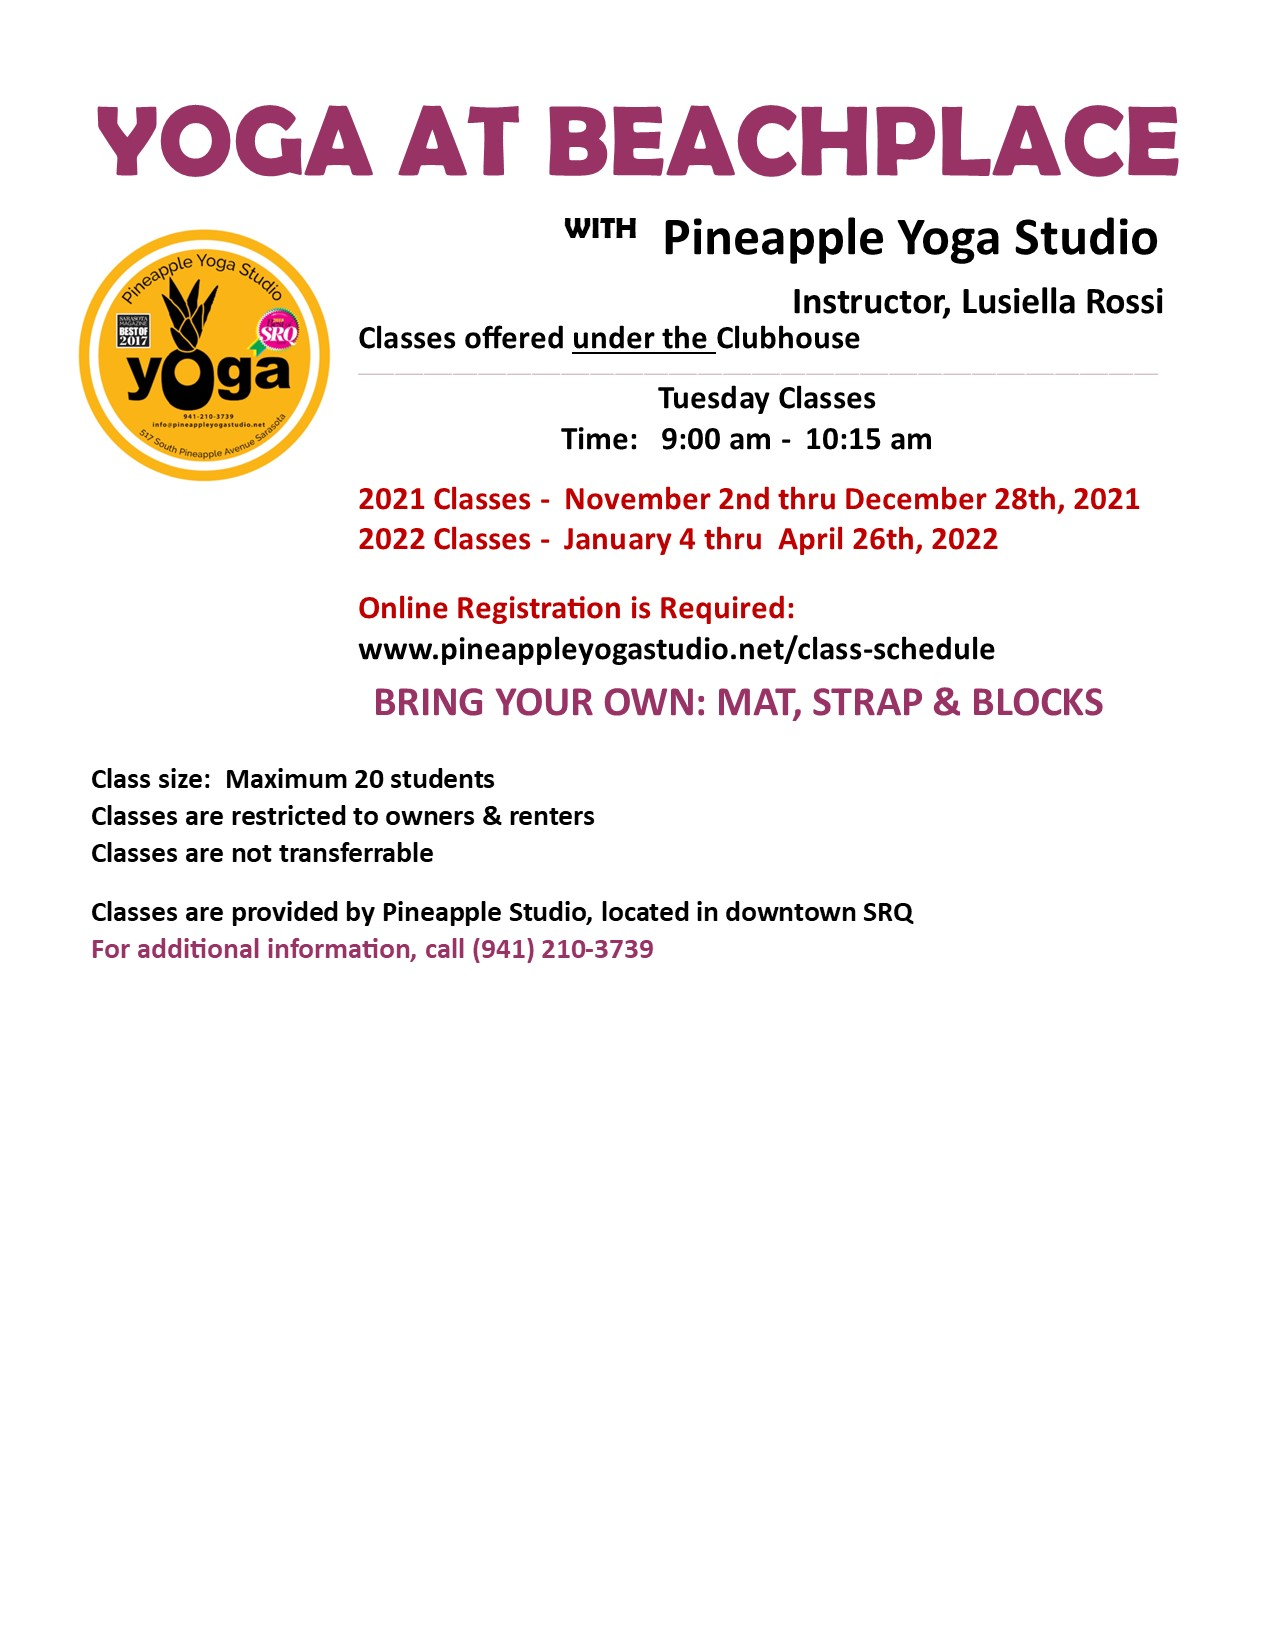 YOGA for Owners & Renters in Residence @ Under the Beachplace Clubhouse